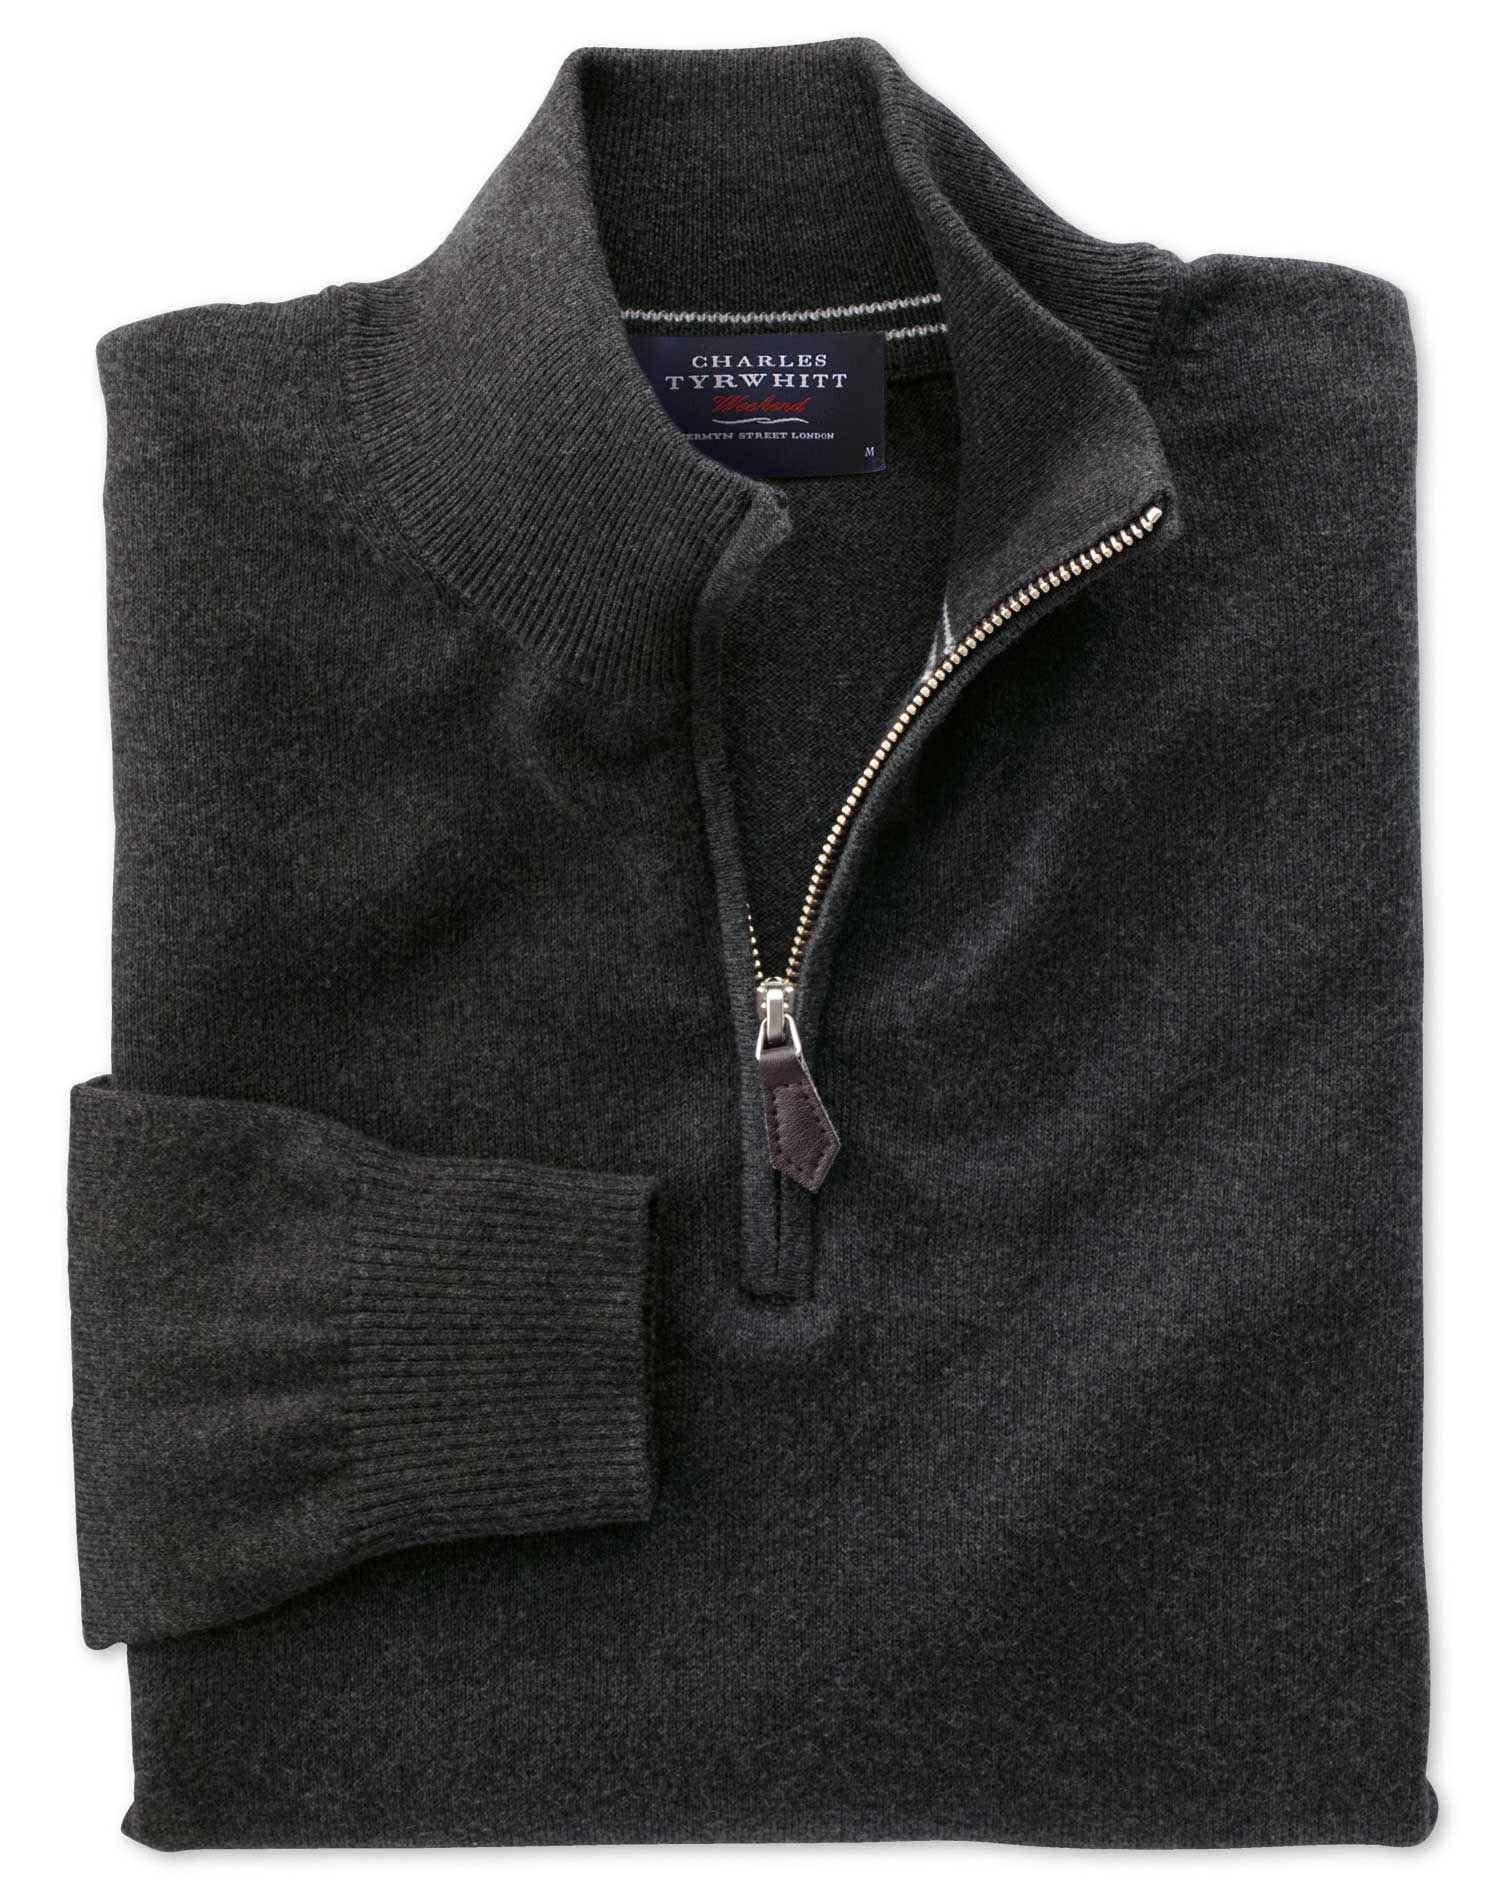 Charcoal Cotton Cashmere Zip Neck Jumper Size XS by Charles Tyrwhitt